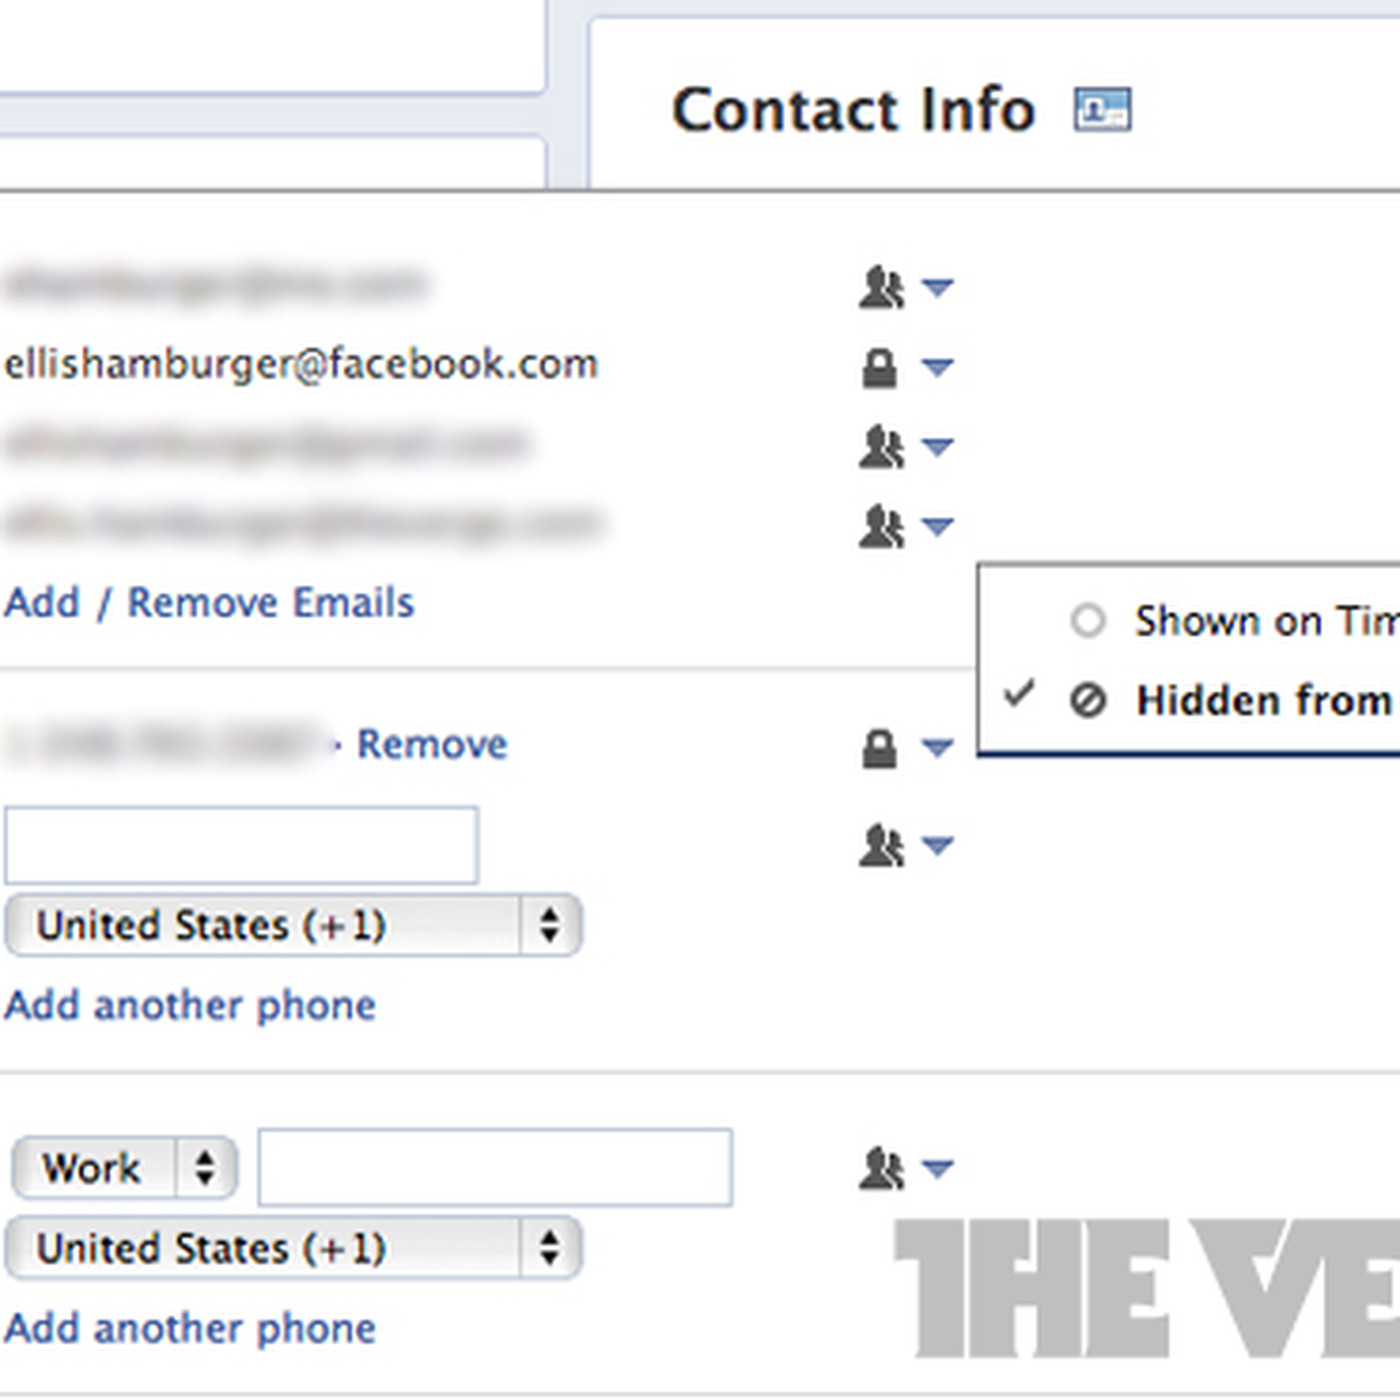 Facebook pushes @facebook com email address in Contact Info, hides